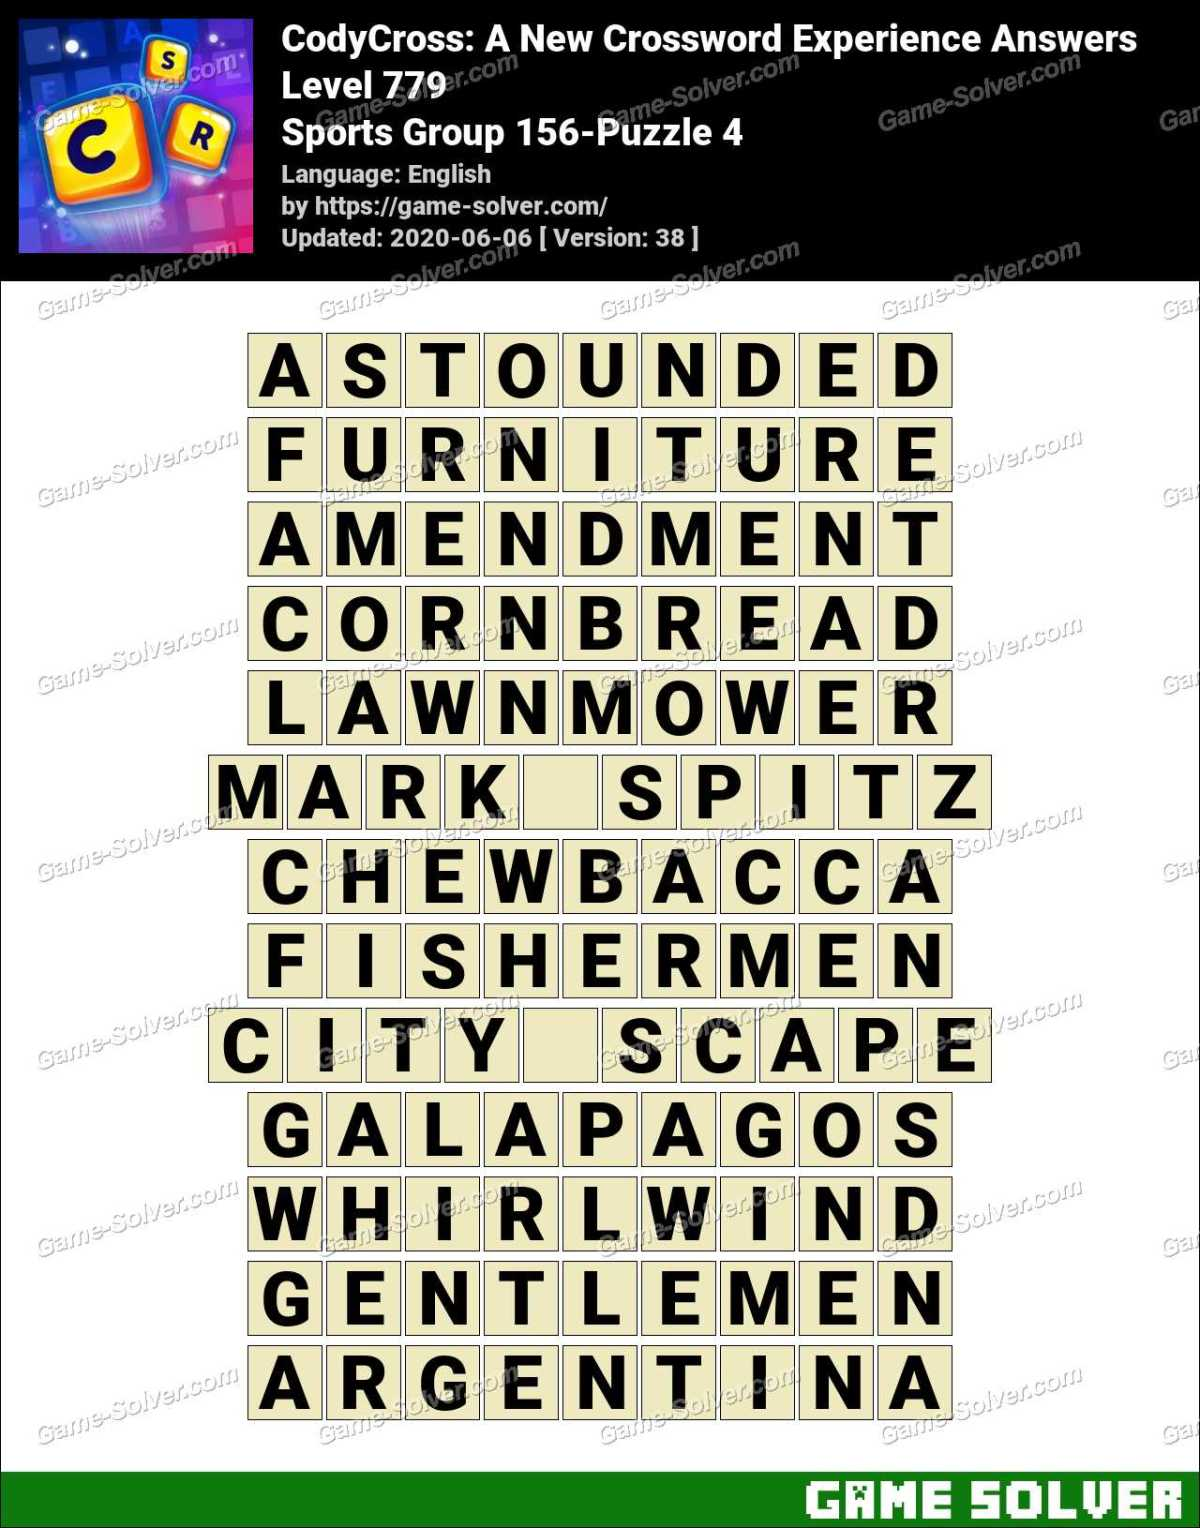 CodyCross Sports Group 156-Puzzle 4 Answers